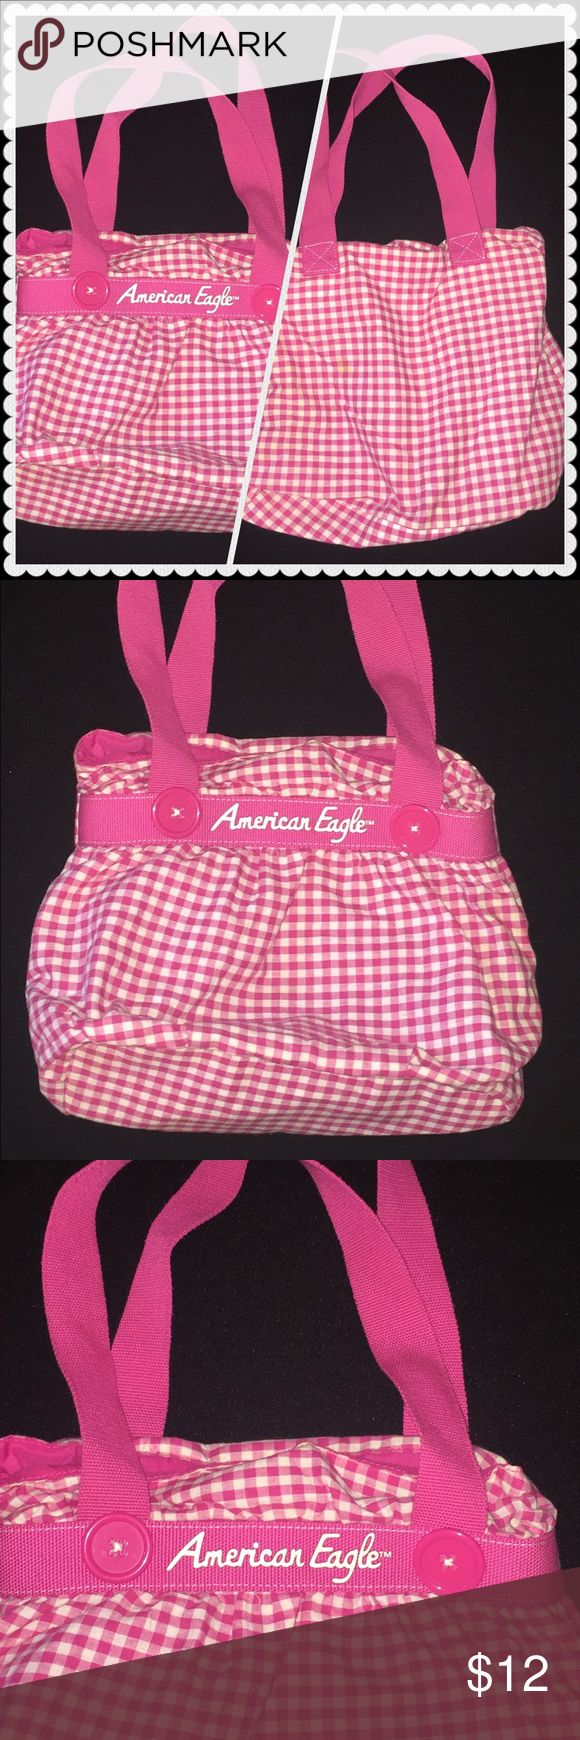 """American Eagle tote Pink American Eagle tote, super cute tote! Very cute!Has pockets on  inside for a Wallet cell phones etc. Very roomy.  Width: 14"""" length: 12"""" used good condition American Eagle Outfitters Bags Totes"""